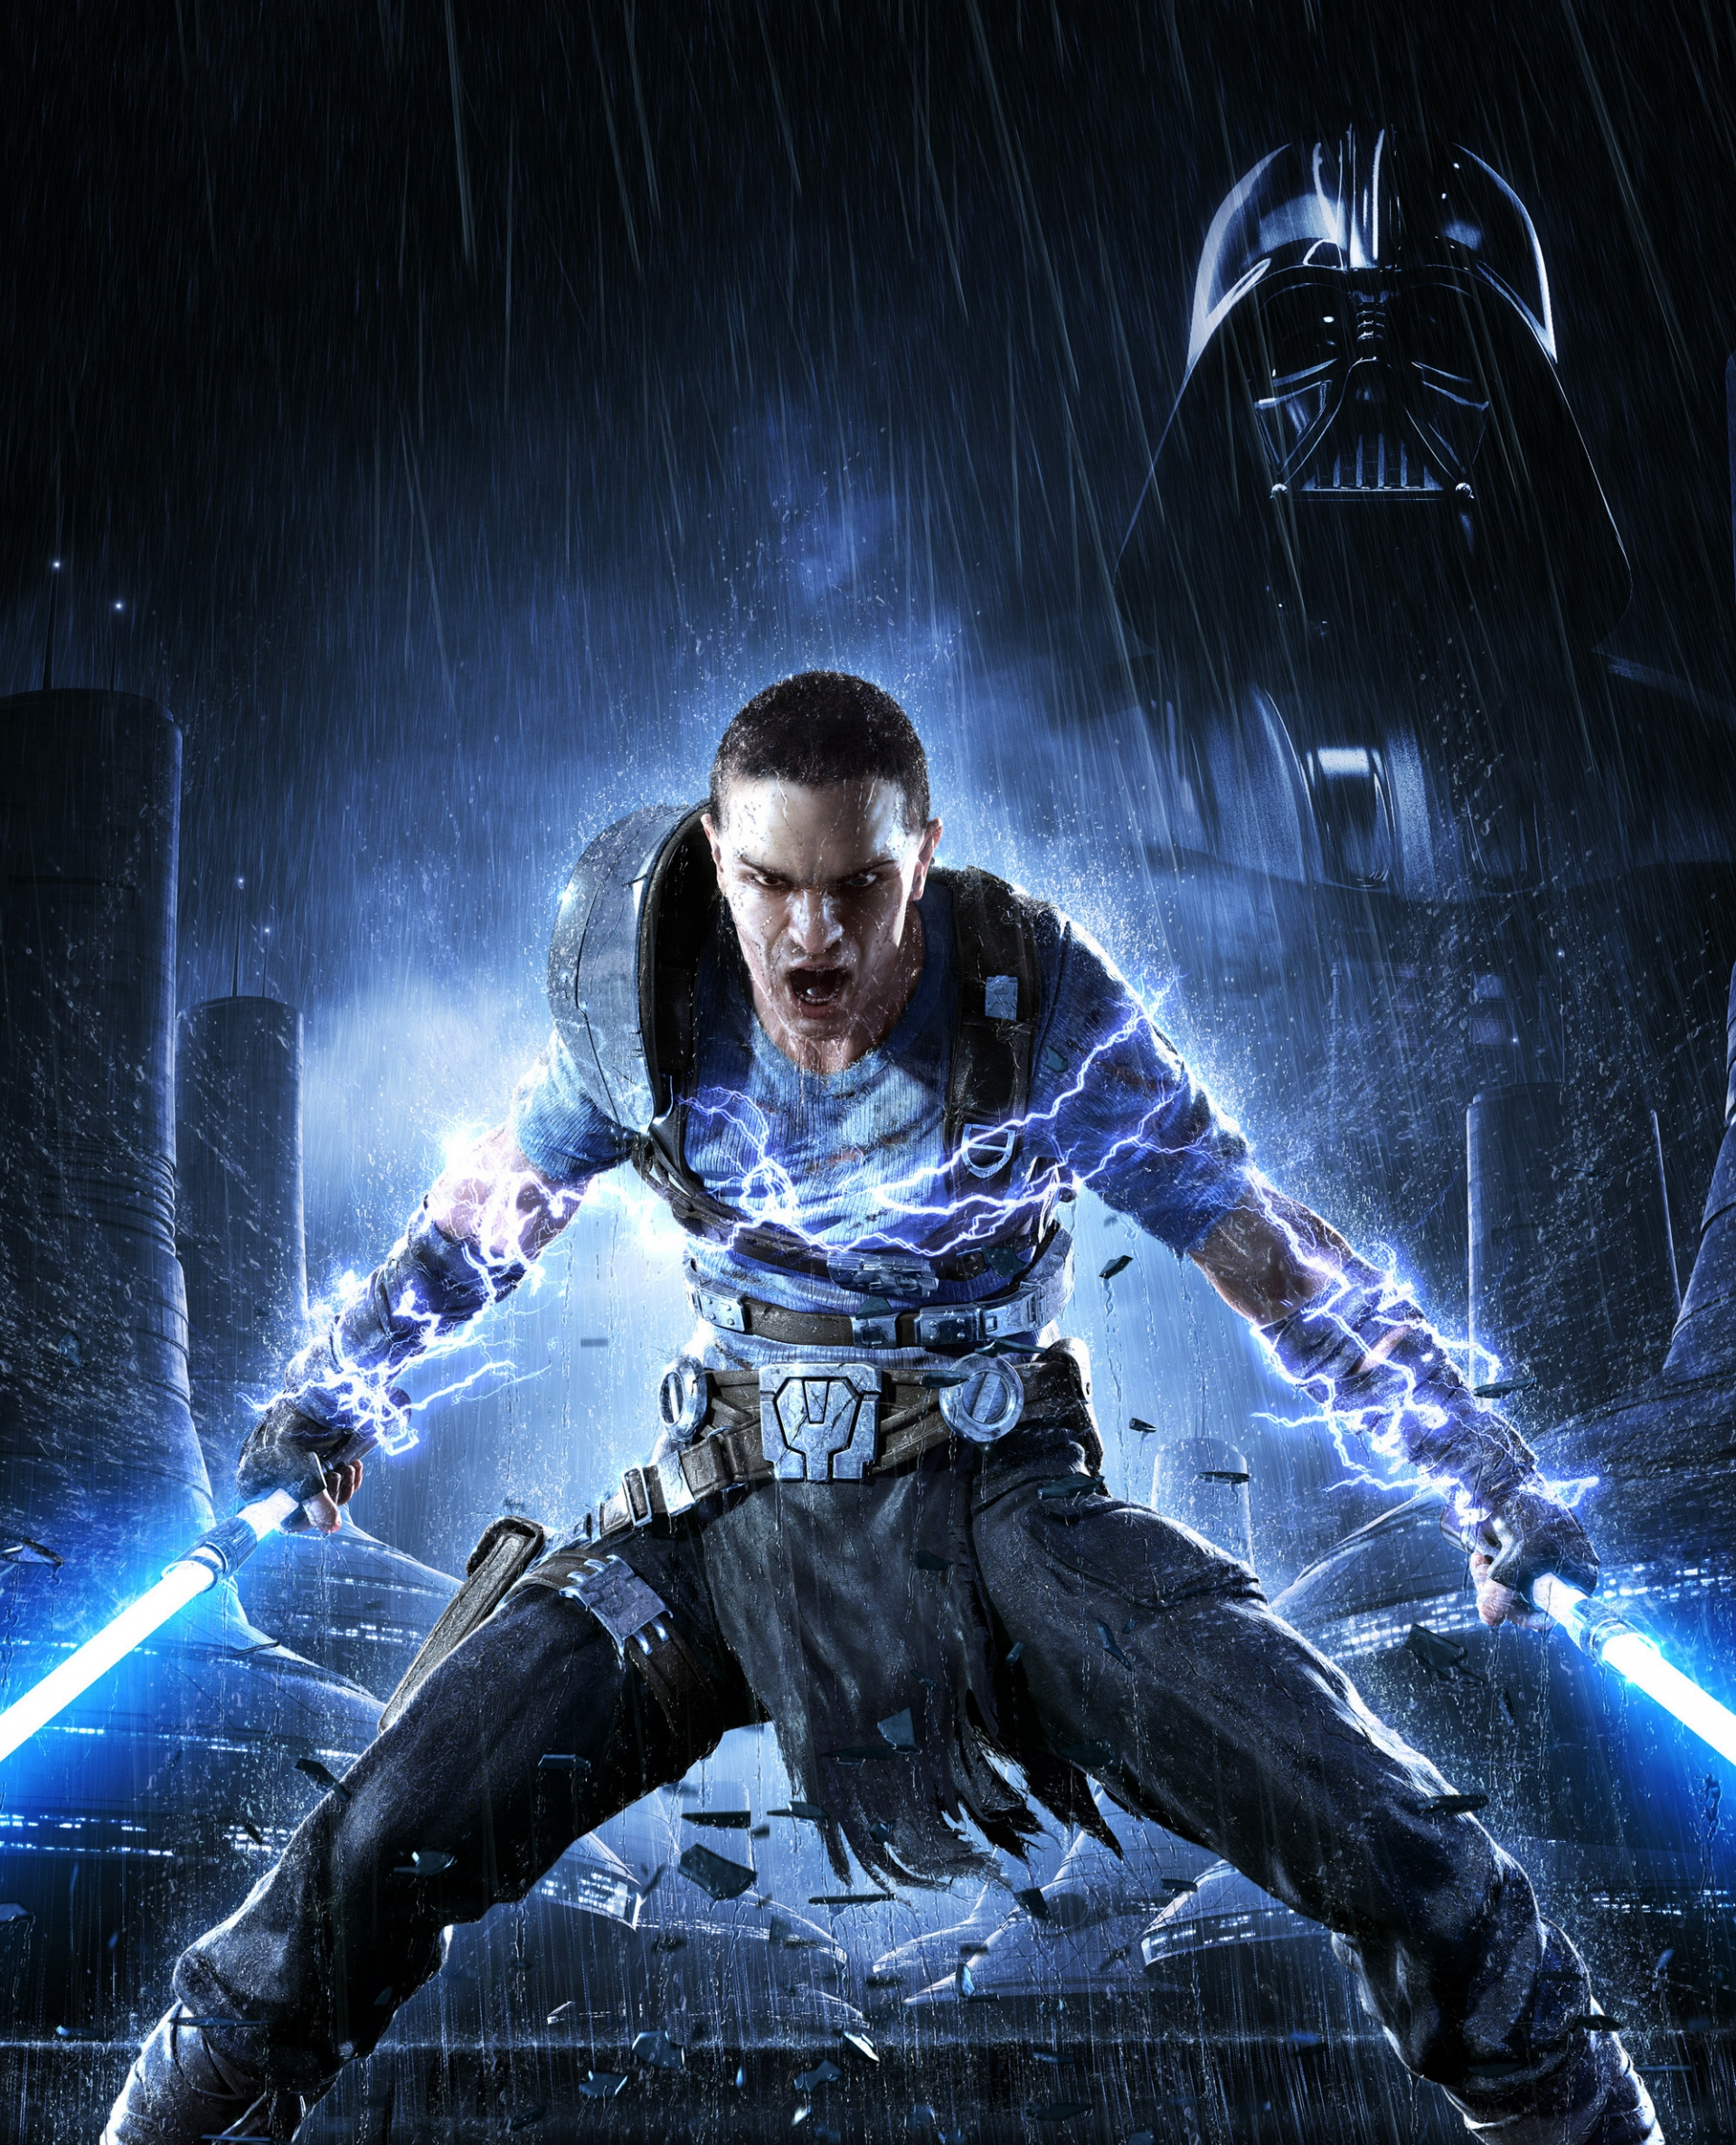 Арт к игре Star Wars: The Force Unleashed 2